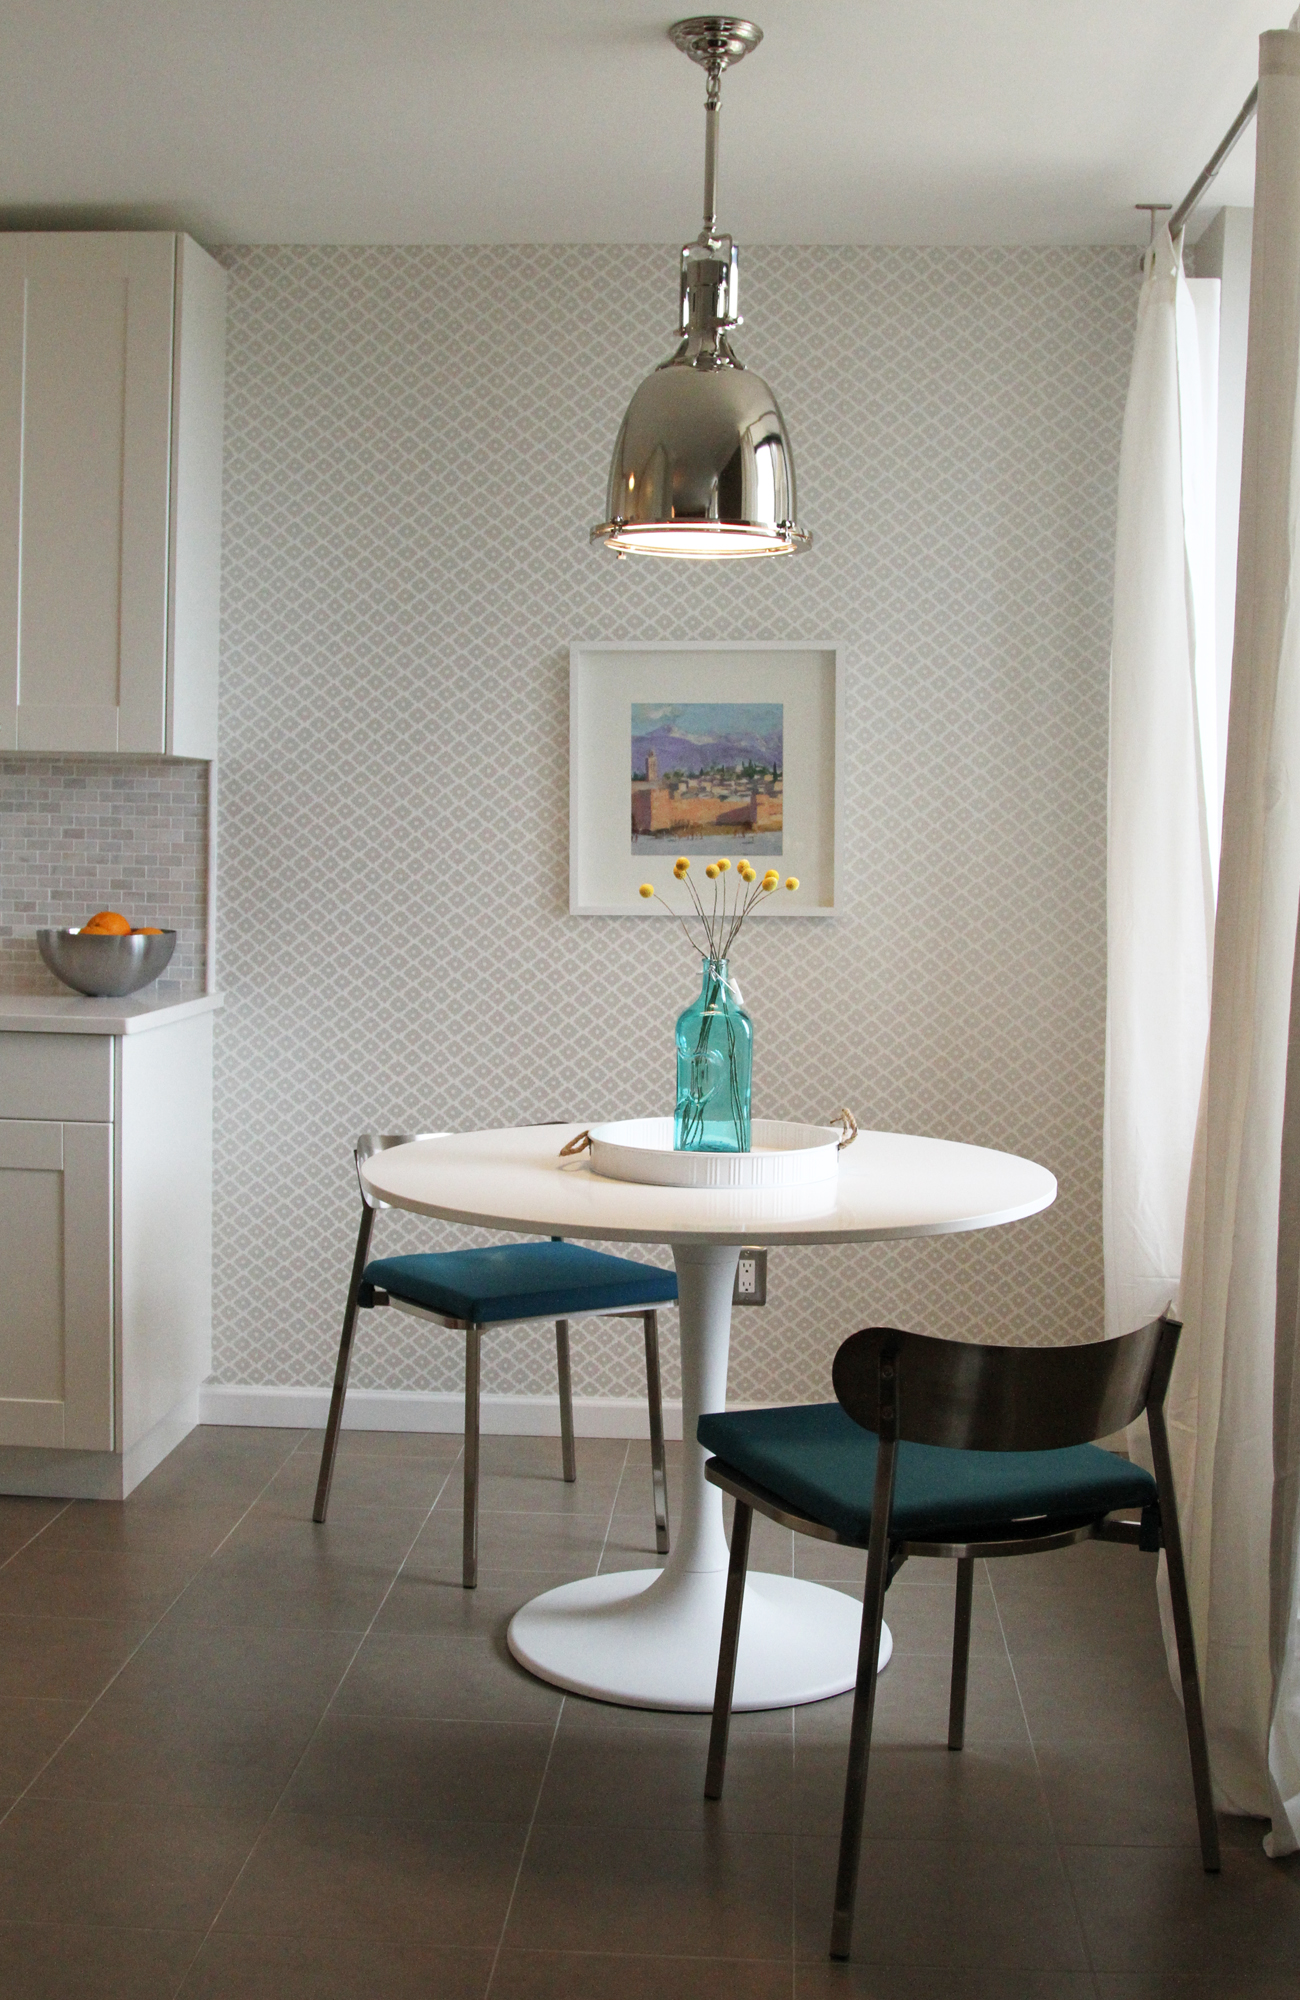 Metal Hanging Pendant Lights For Apartment Breakfast Nook (Image 15 of 20)